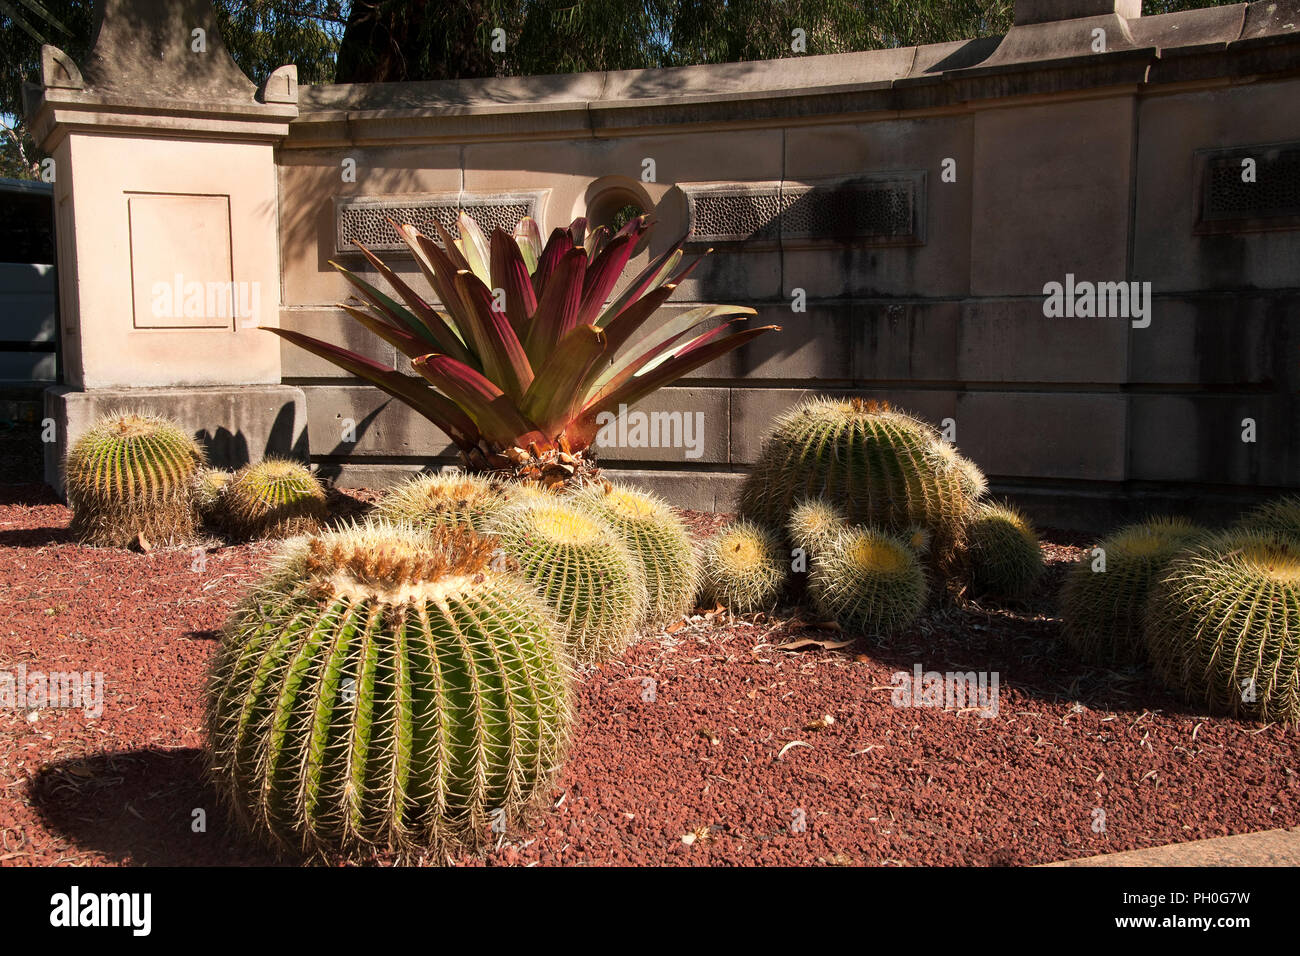 Sydney Australia, Barrel Cactus in botanical gardens with sandstone wall in background Stock Photo